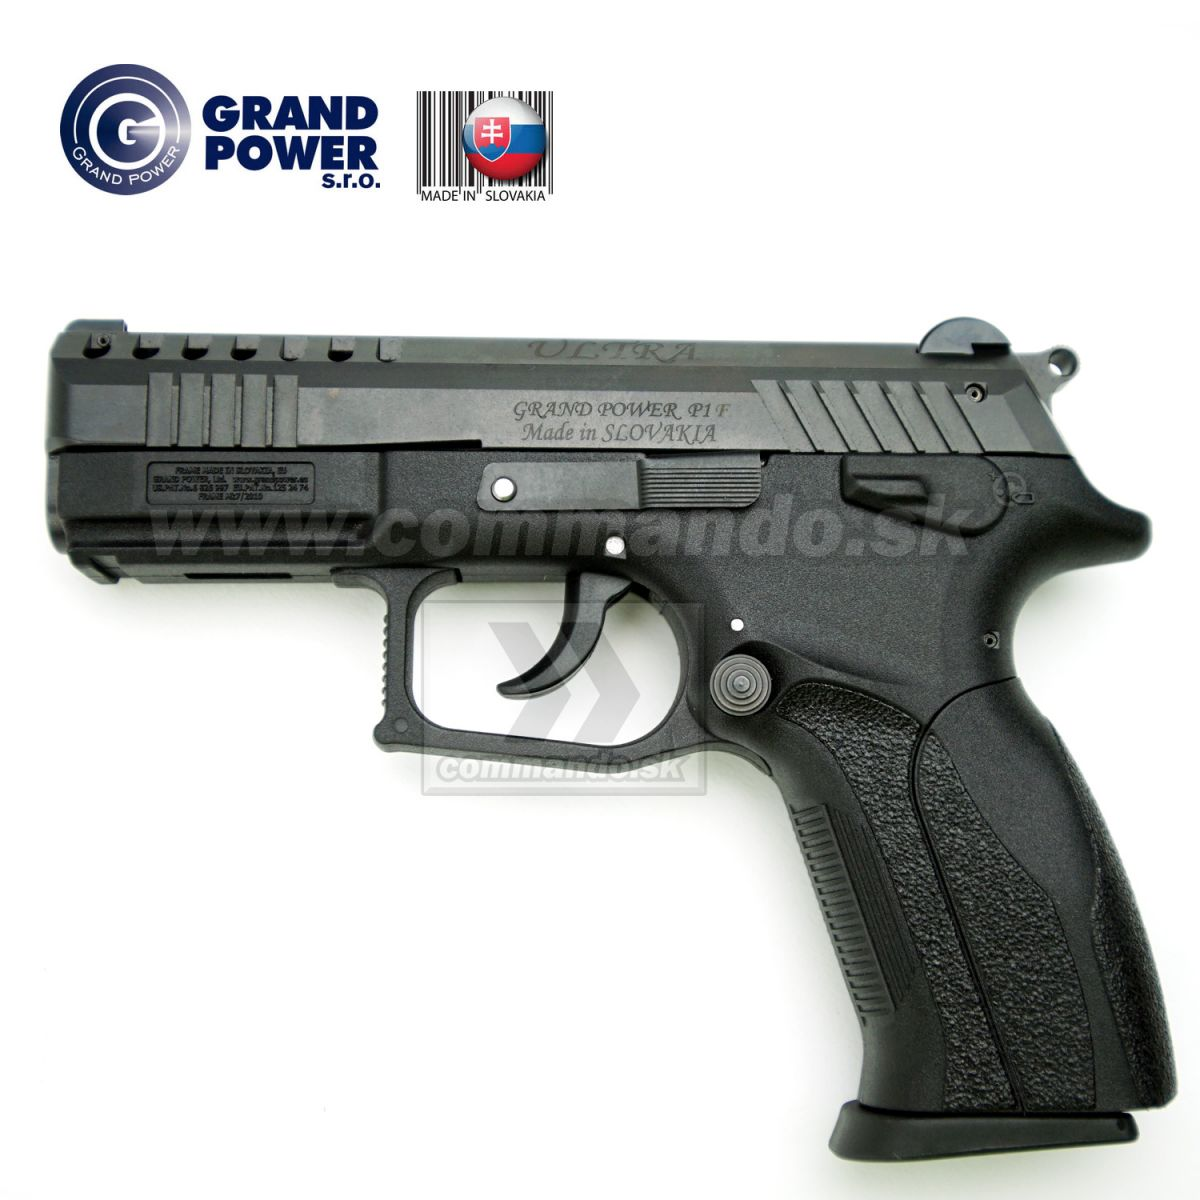 Grand Power P1F ULTRA MK7/1 Flobert Pistol 6mm | Commando sk